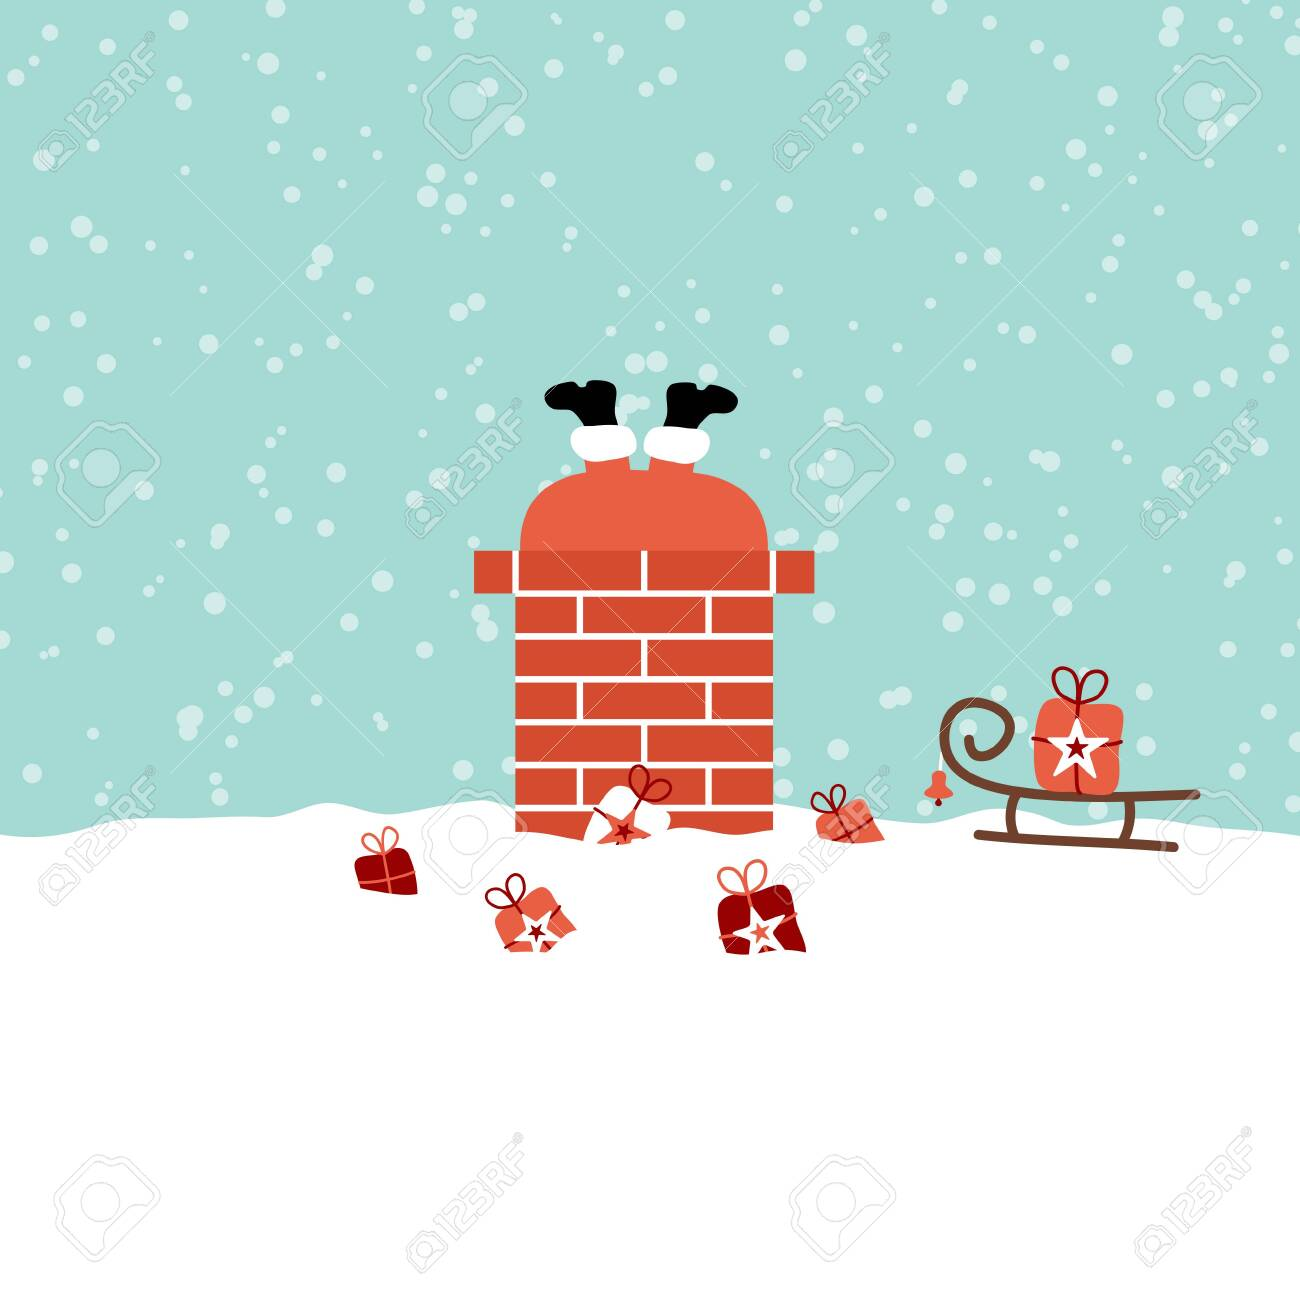 Santa Stuck In Chimney On Roof Snow Turquoise - 130480324